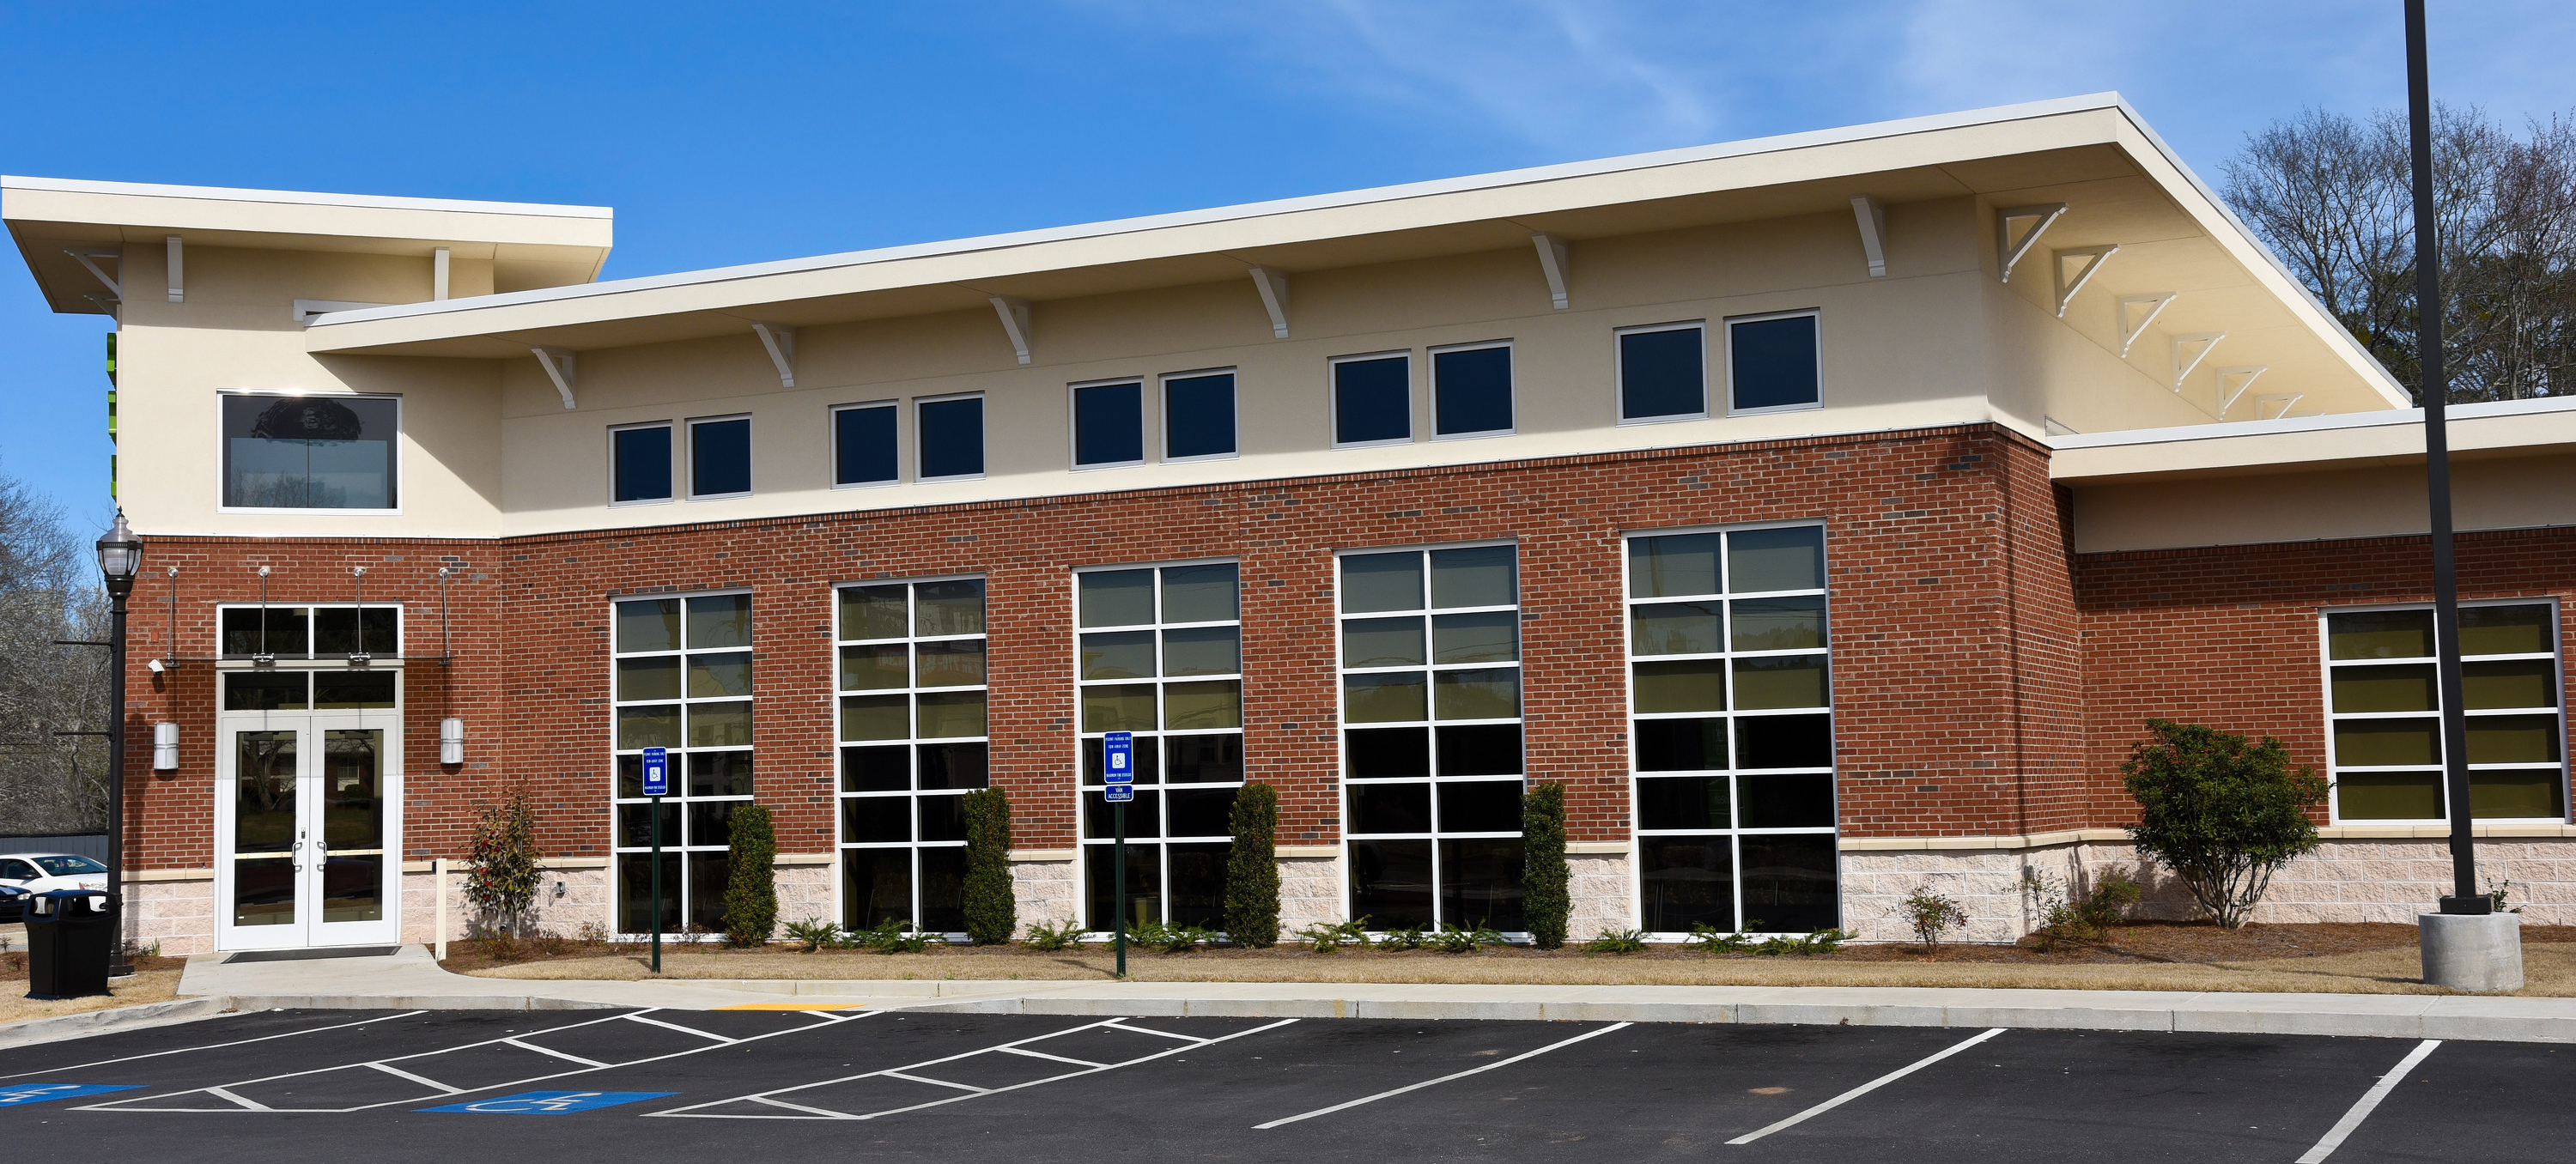 Commercial Industrial Painting Kitchener Waterloo Guelph